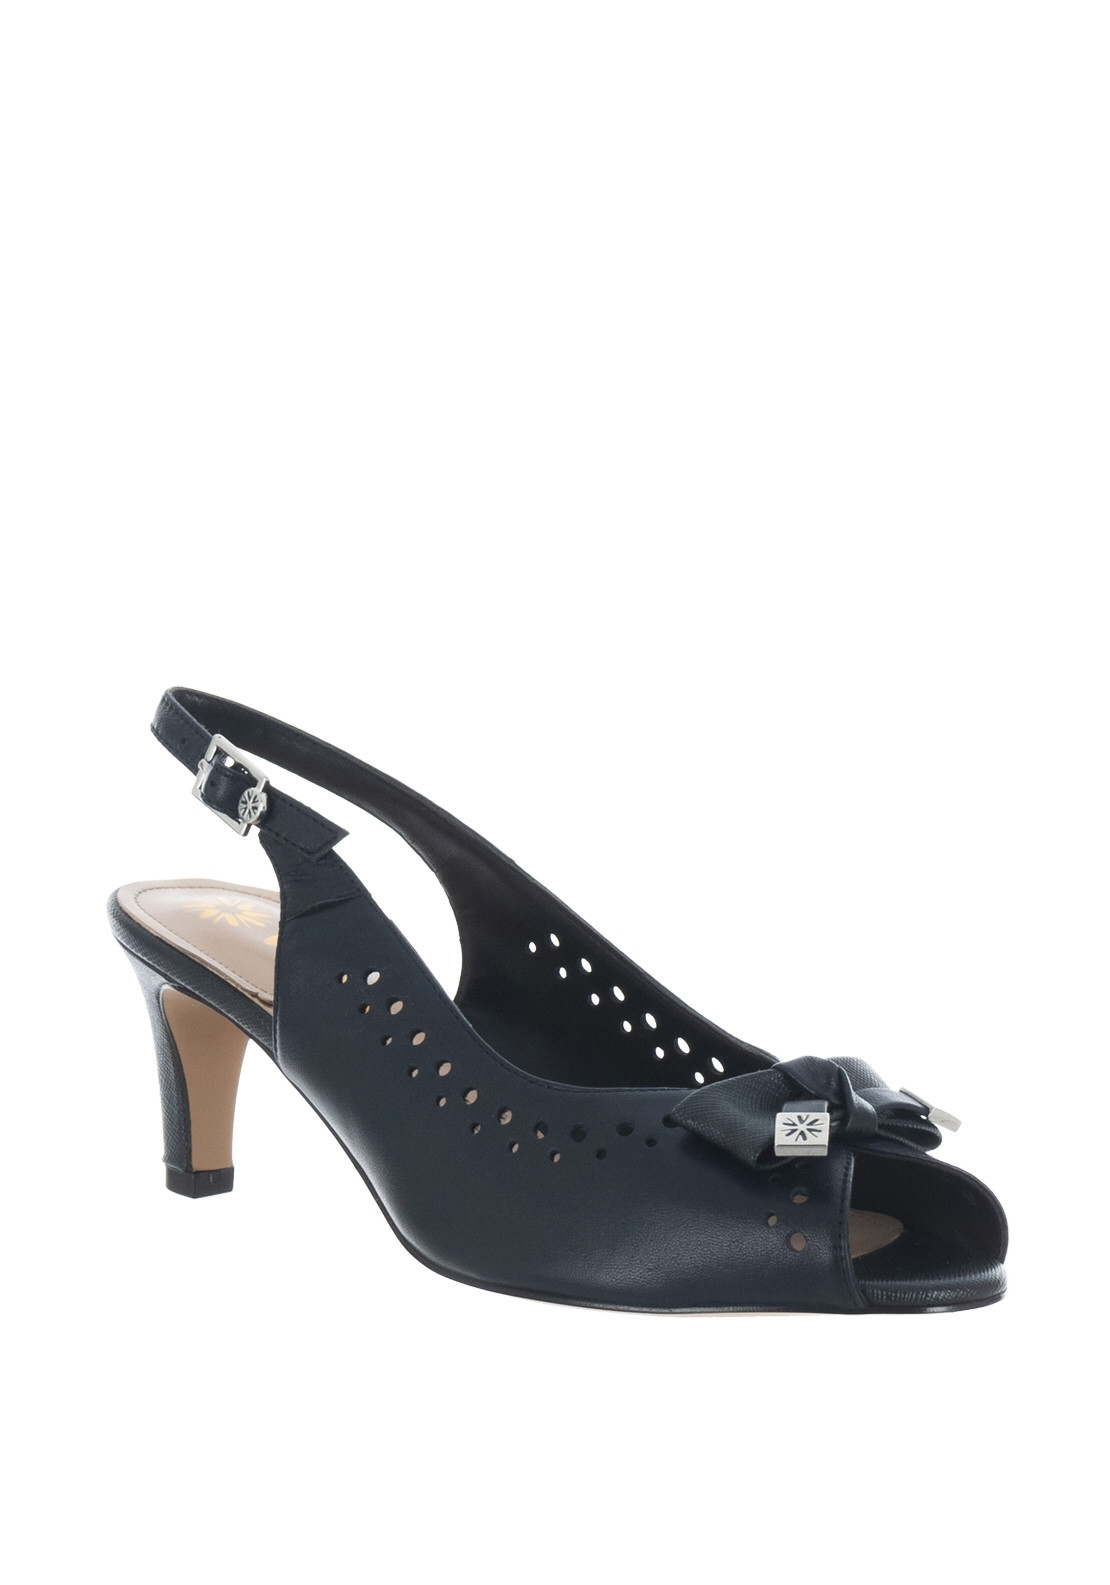 cdcf5ba324 Van Dal Hawkhurst Leather E Fit Heeled Sandals, Navy. Be the first to  review this product